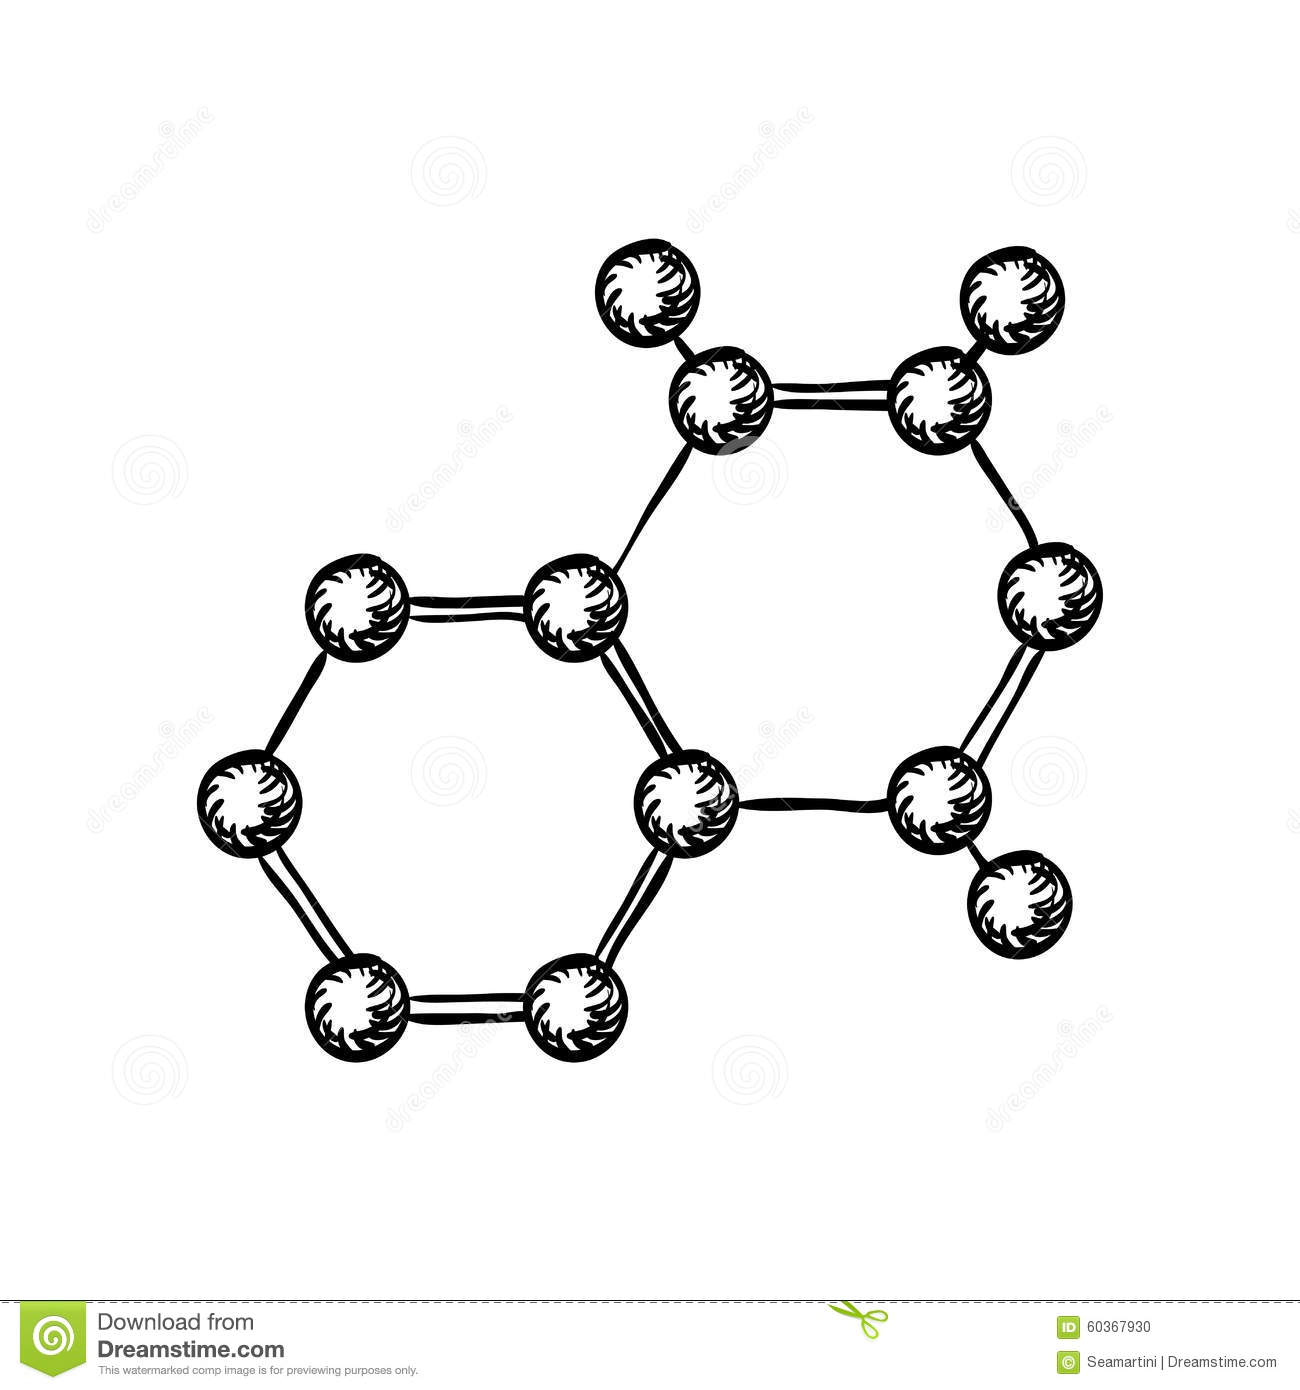 Sketch Of Molecular Model With Atoms And Bonds Stock